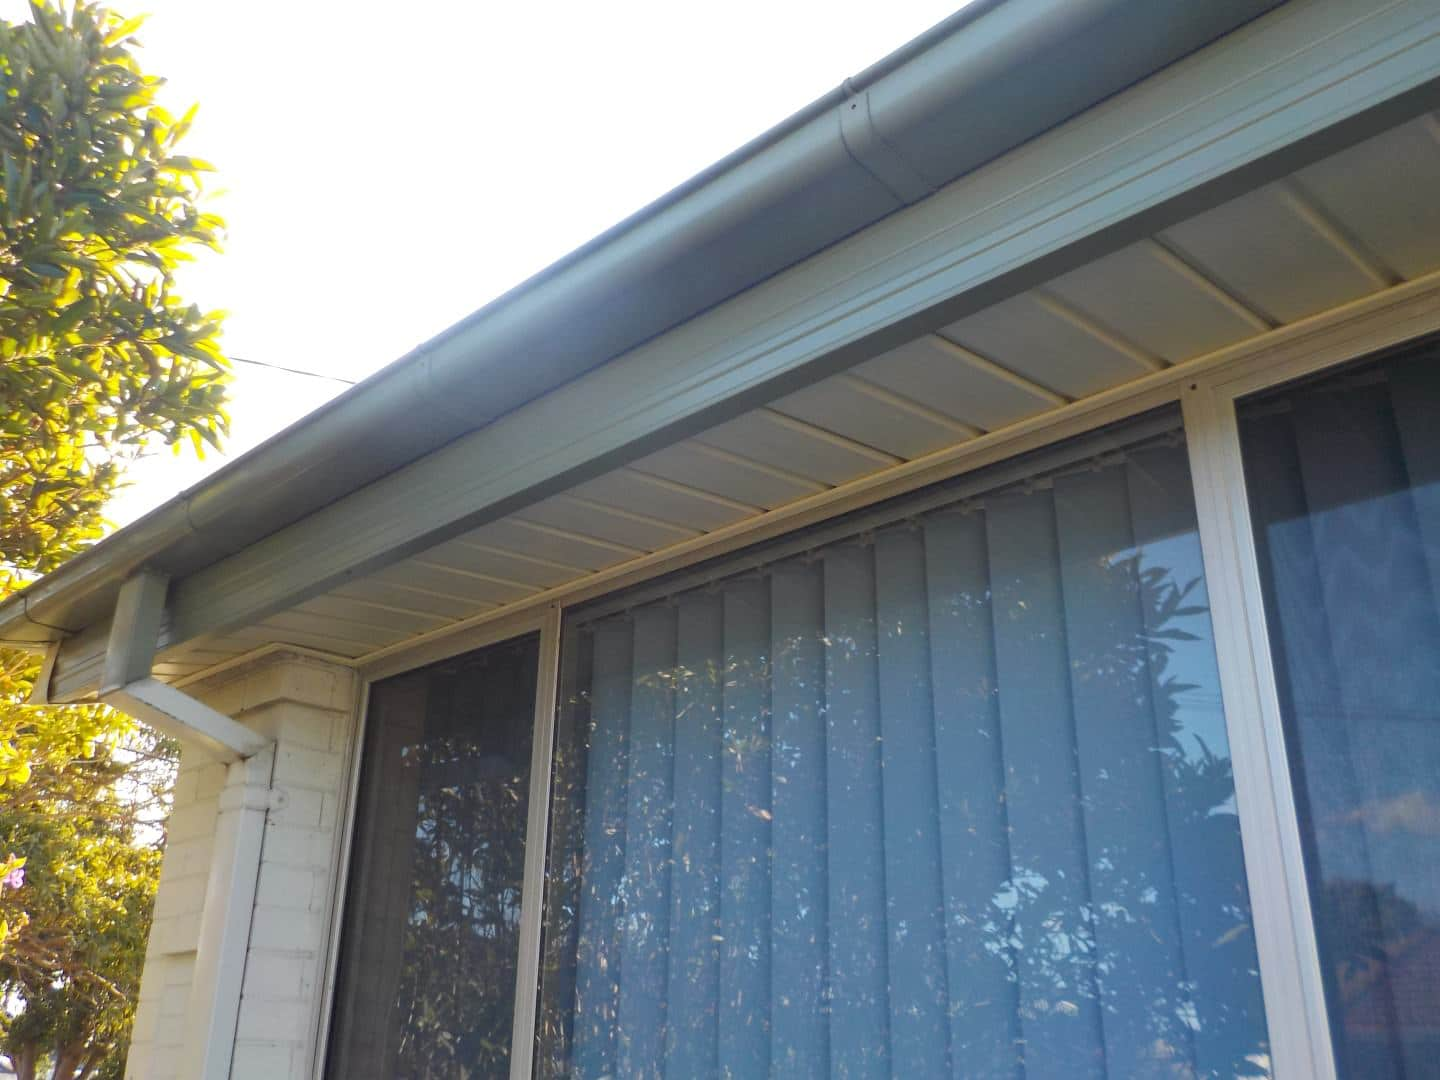 Scholley St Matyfield Ace gutter and fascia cover - Vinyl Wall Cladding Projects - Forever Boards